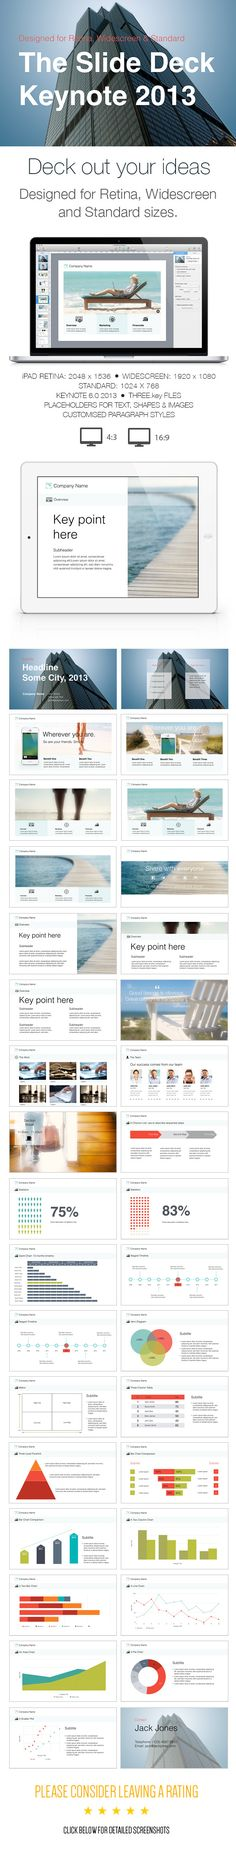 The Slide Deck- A Keynote Template #keynote #keynotetemplate Download: http://graphicriver.net/item/the-slide-deck-a-keynote-template/6082804?ref=ksioks